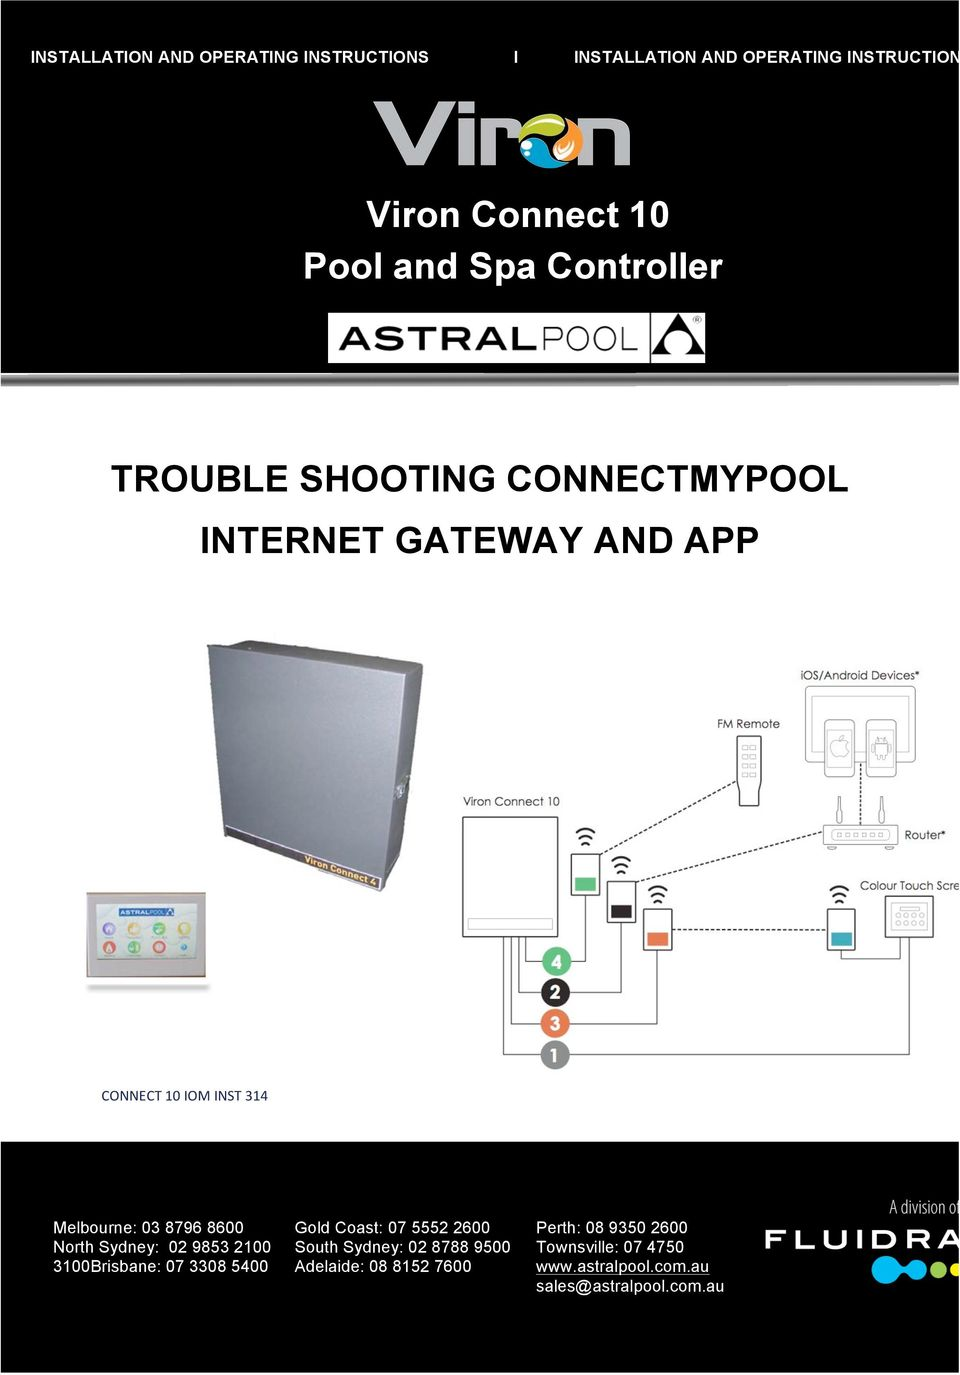 Installation And Operating Instructions I Rj12 Wiring Diagram For Pools Inst 314 Melbourne 03 8796 8600 Gold Coast 07 5552 2600 Perth 08